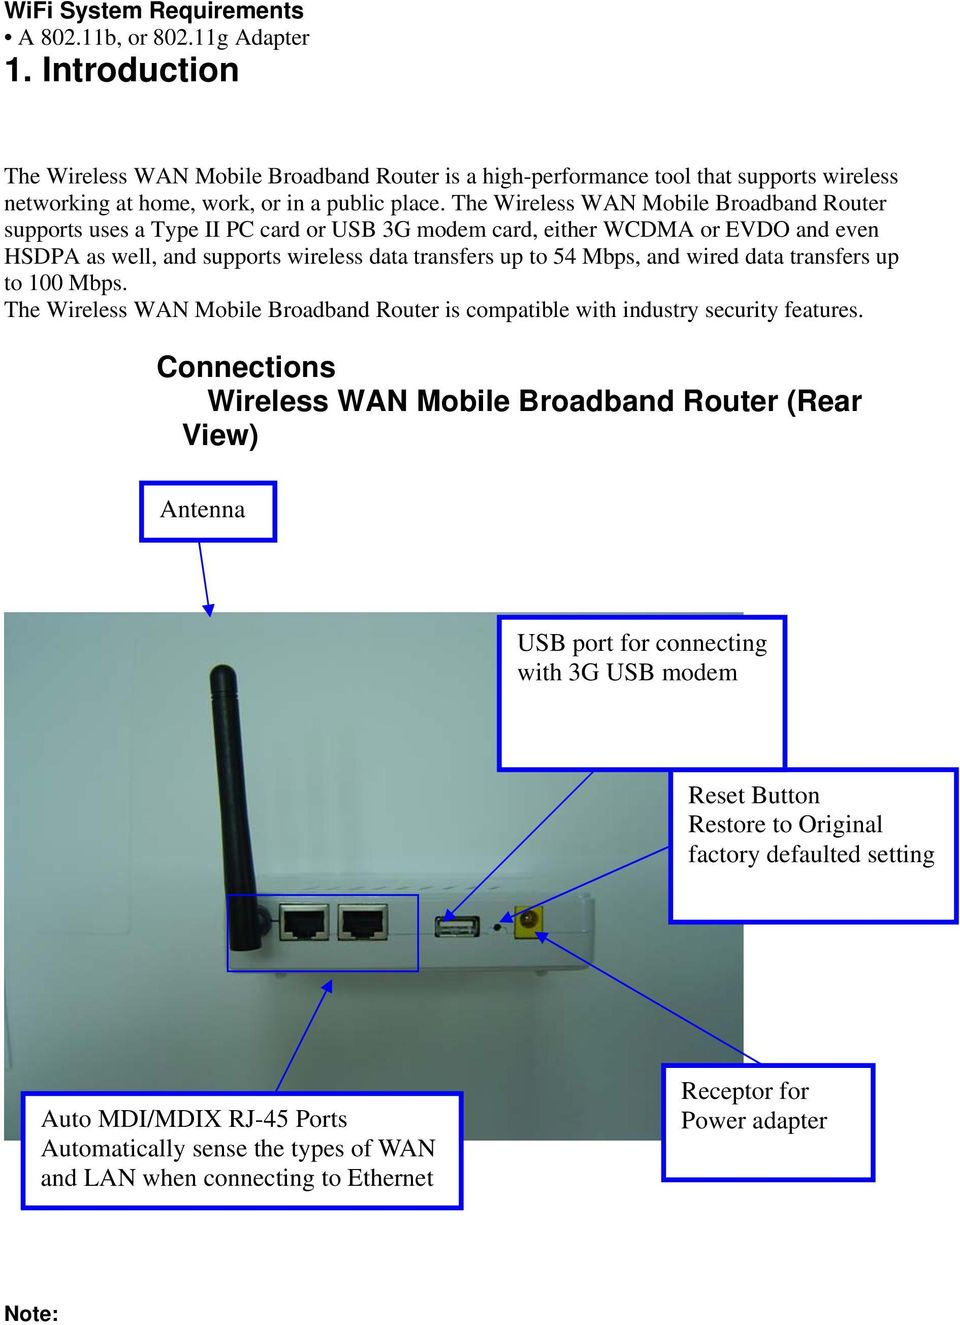 The Wireless WAN Mobile Broadband Router supports uses a Type II PC card or USB 3G modem card, either WCDMA or EVDO and even HSDPA as well, and supports wireless data transfers up to 54 Mbps, and